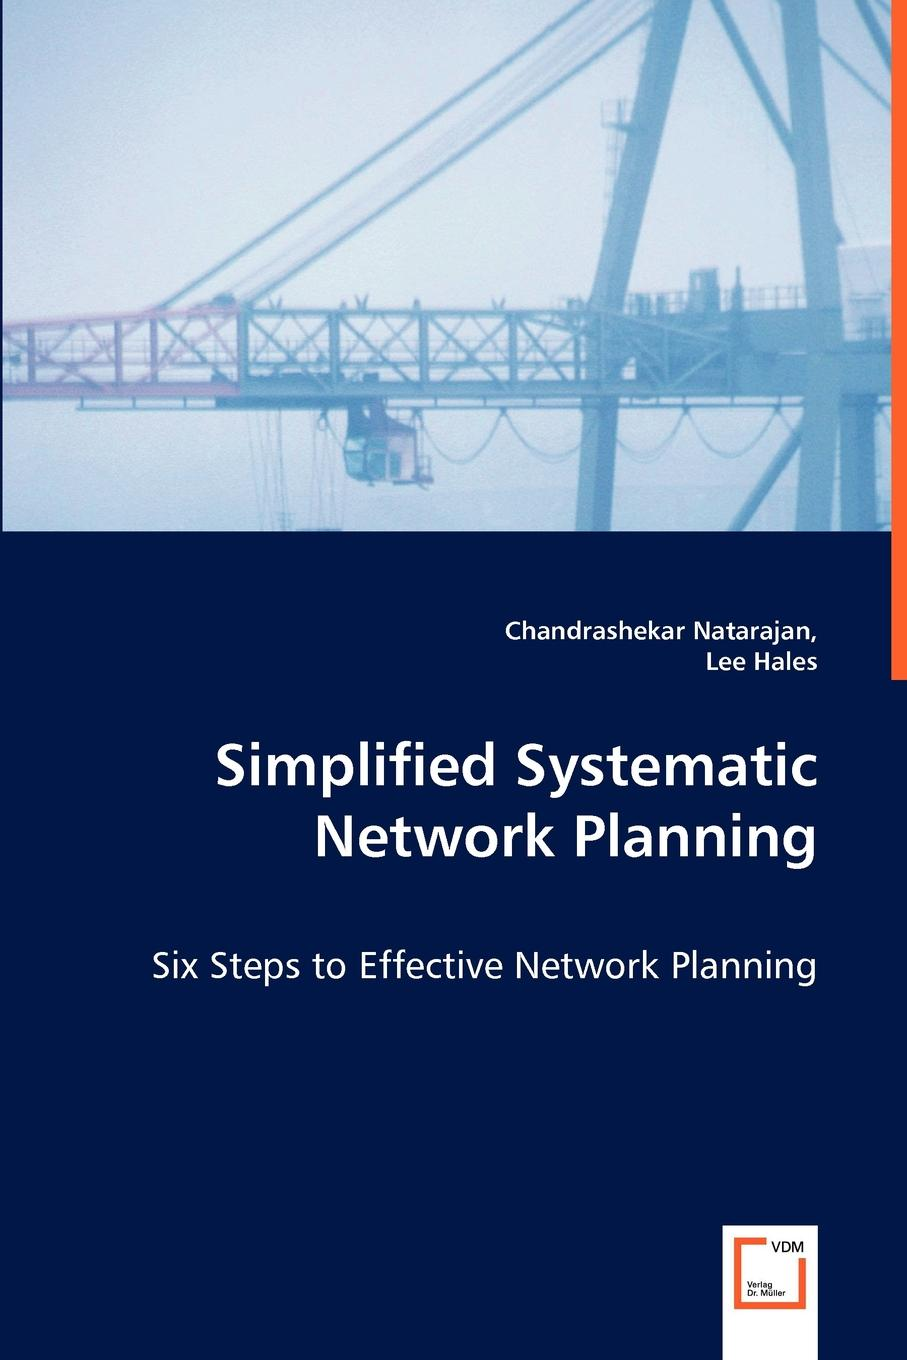 Chandrashekar Natarajan, Lee Hales Simplified Systematic Network Planning - Six Steps to Effective Network Planning planning and evaluates performance of radio network